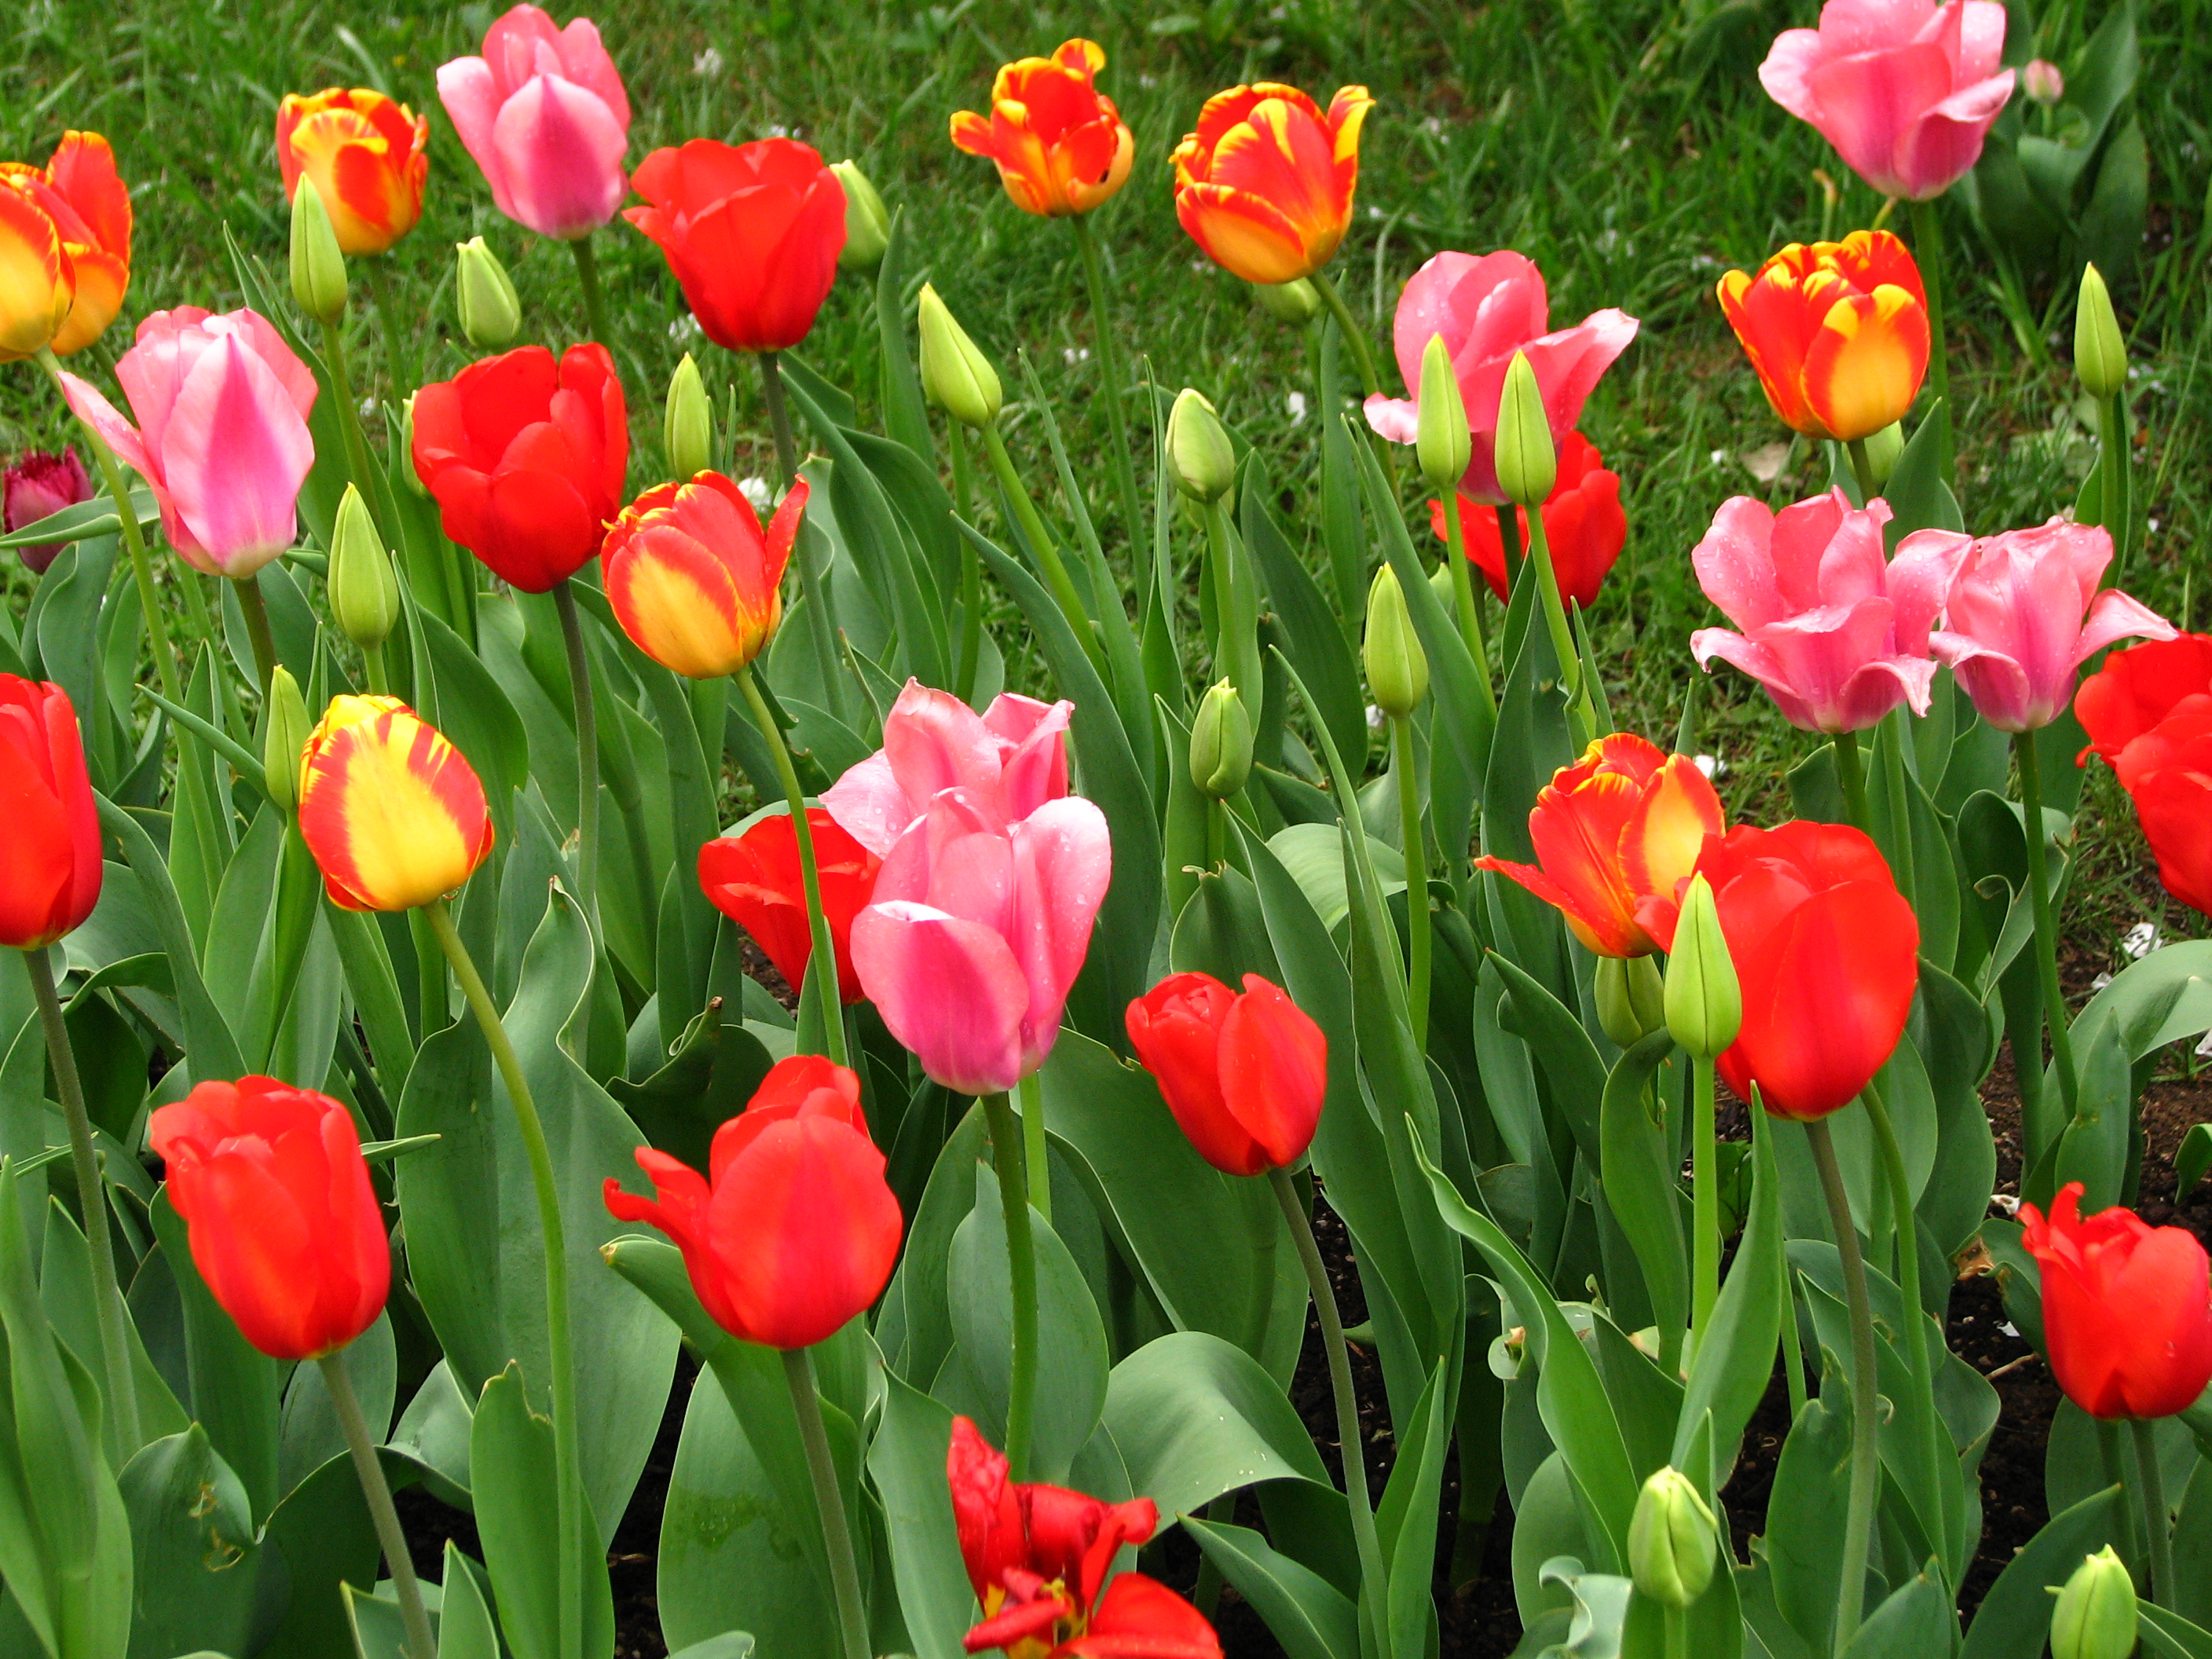 tulips in the spring - photo #34